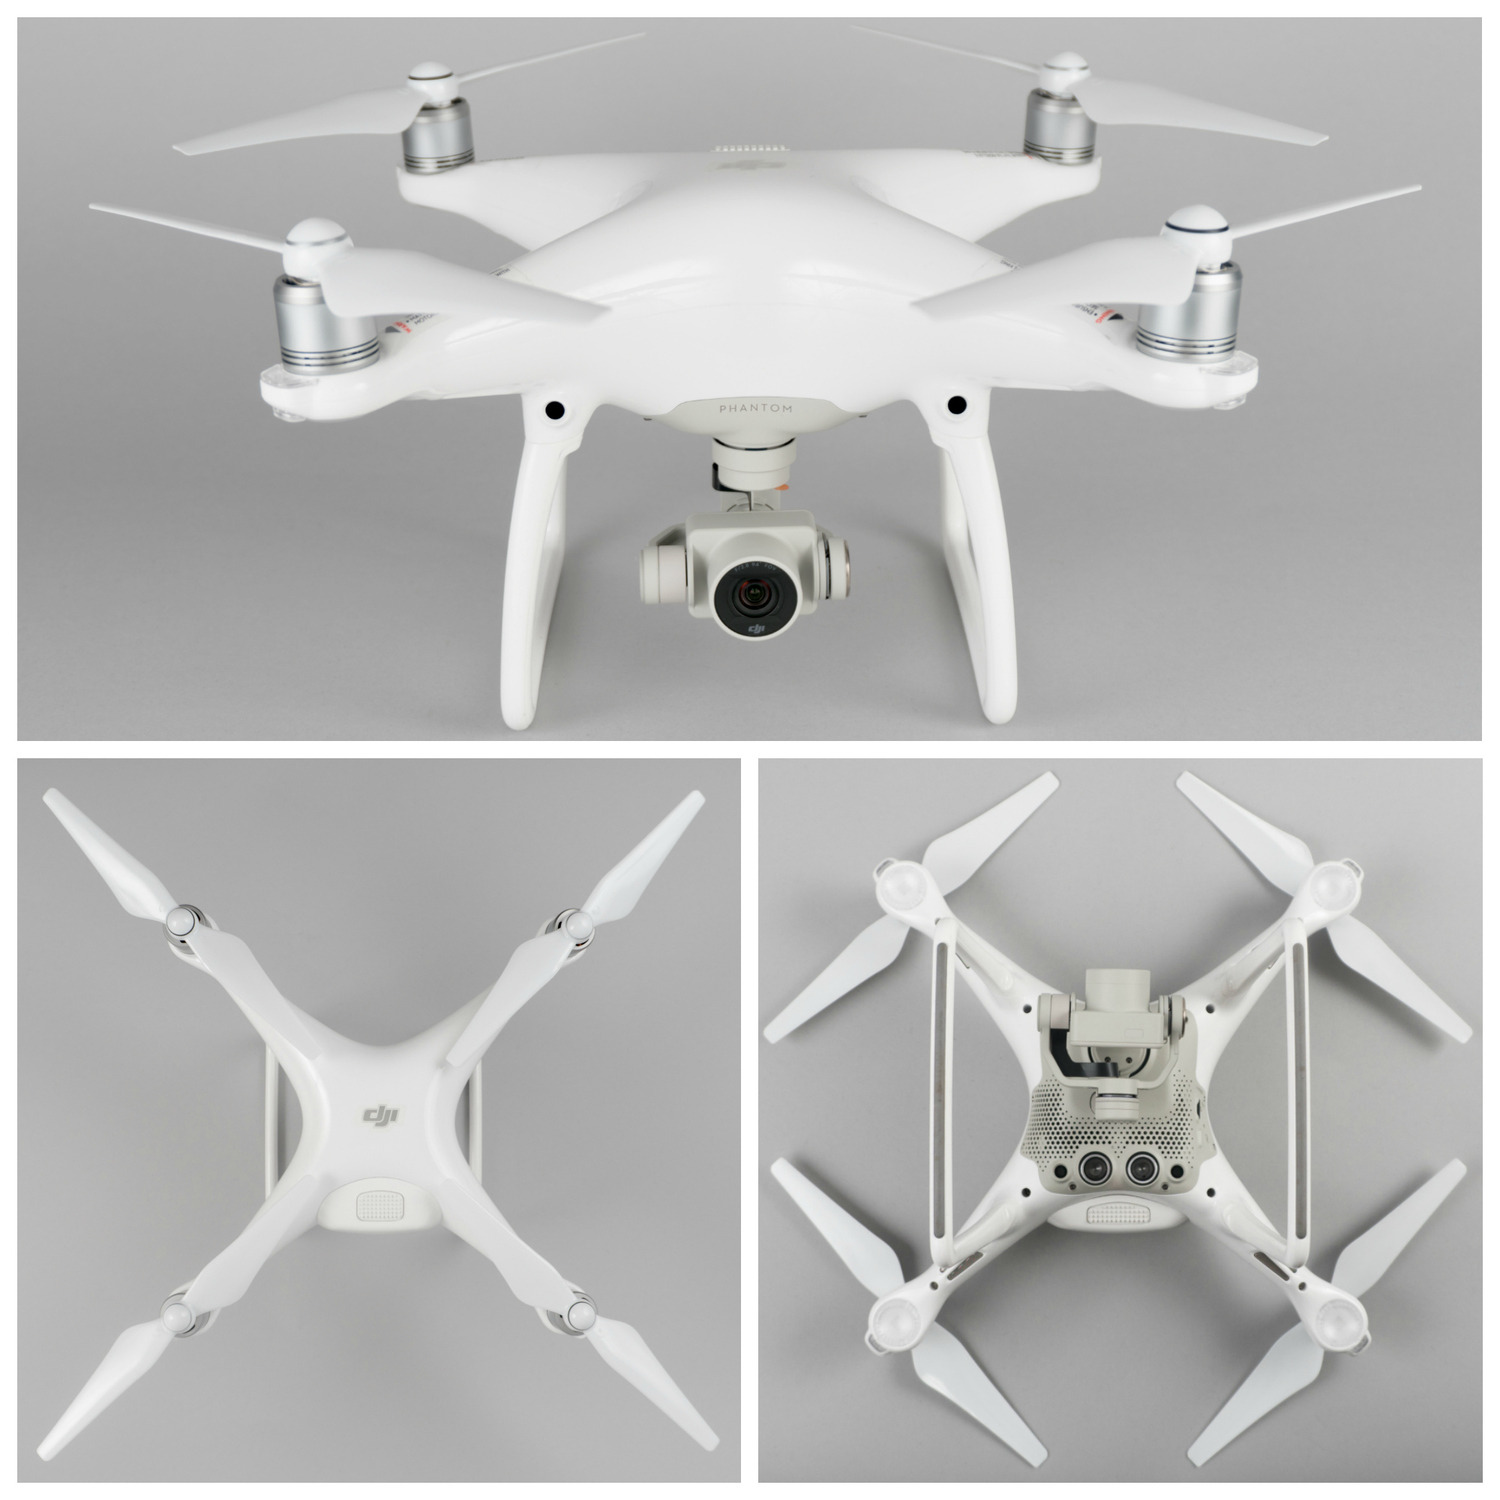 Phantom 4 Exterior Design